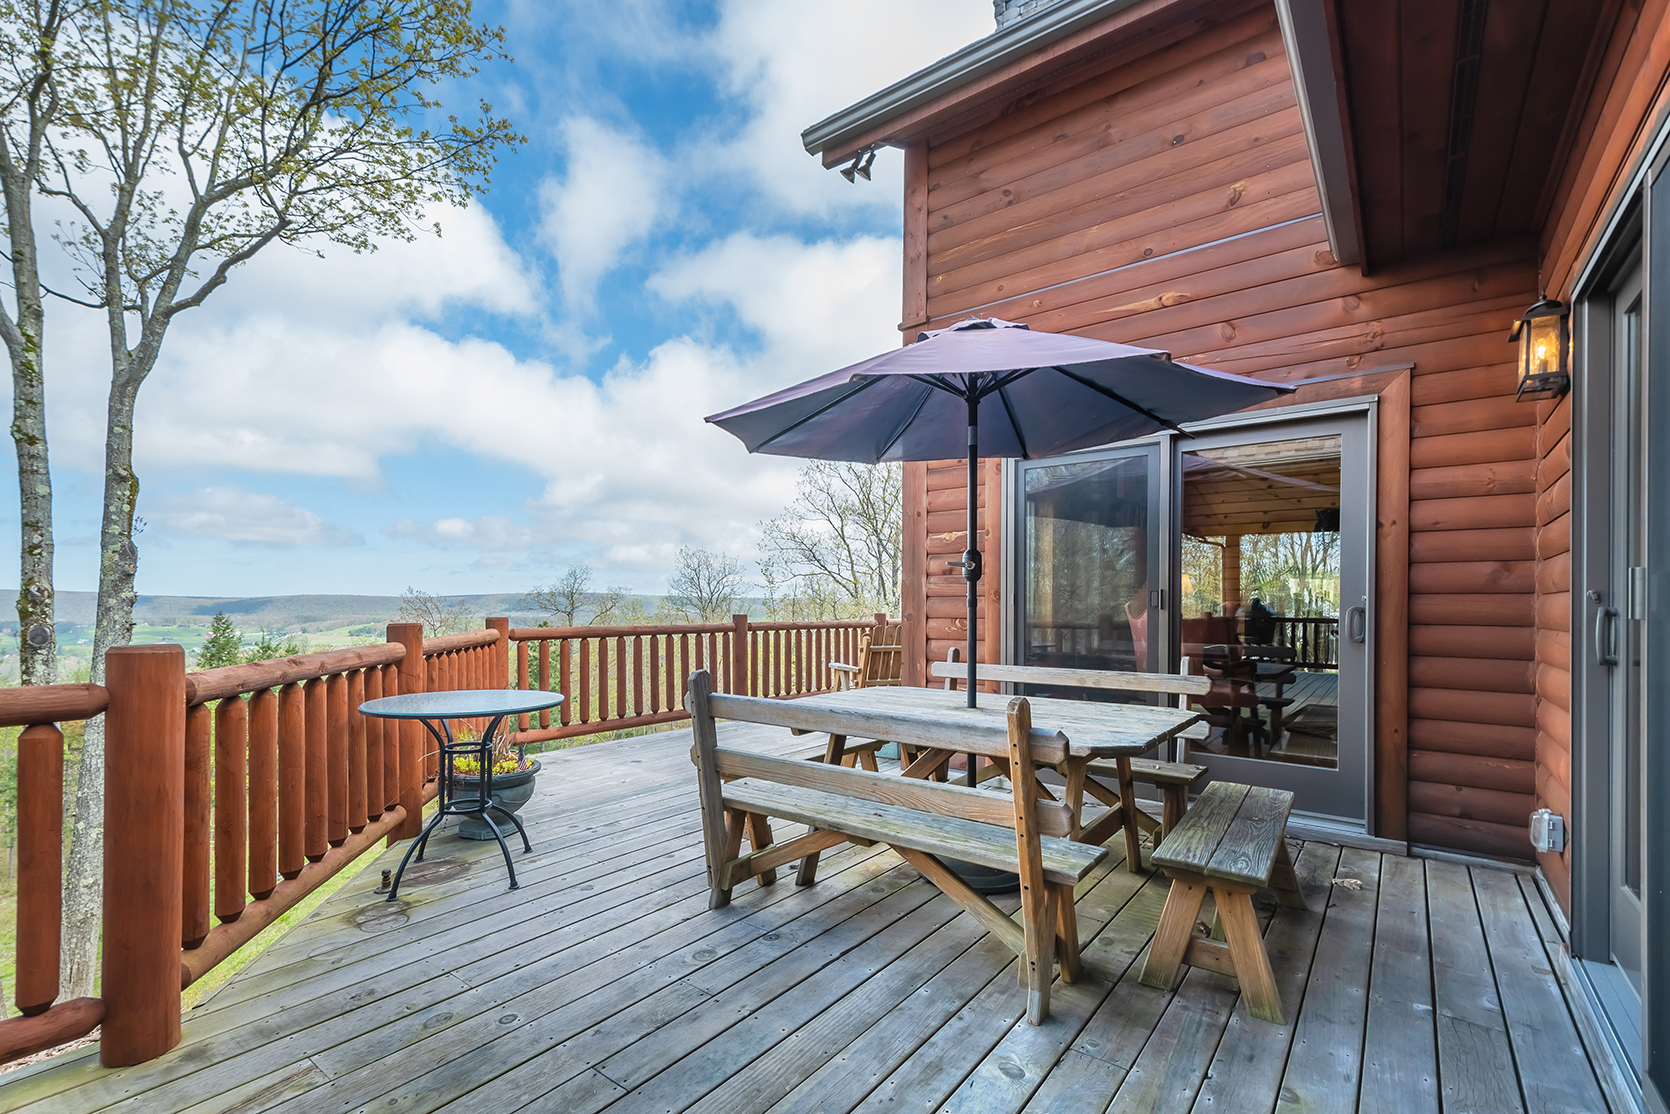 585SUMMITDRIVE_Deck_1